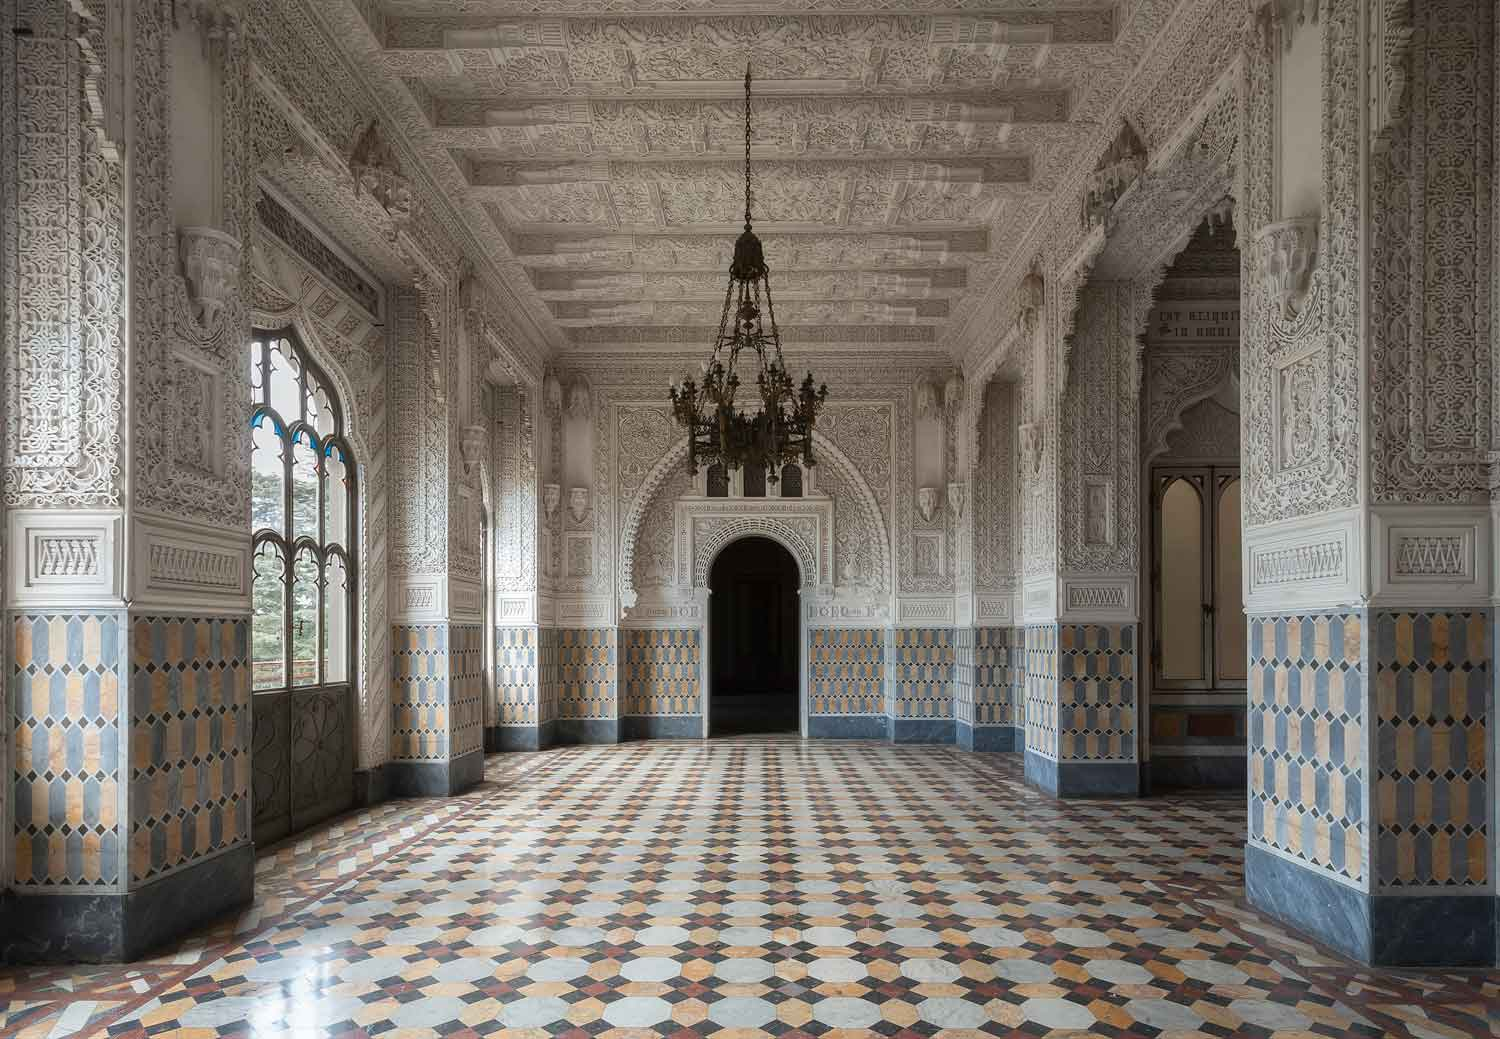 Abandoned Castle Photography by Martino Zegwaard | Yellowtrace